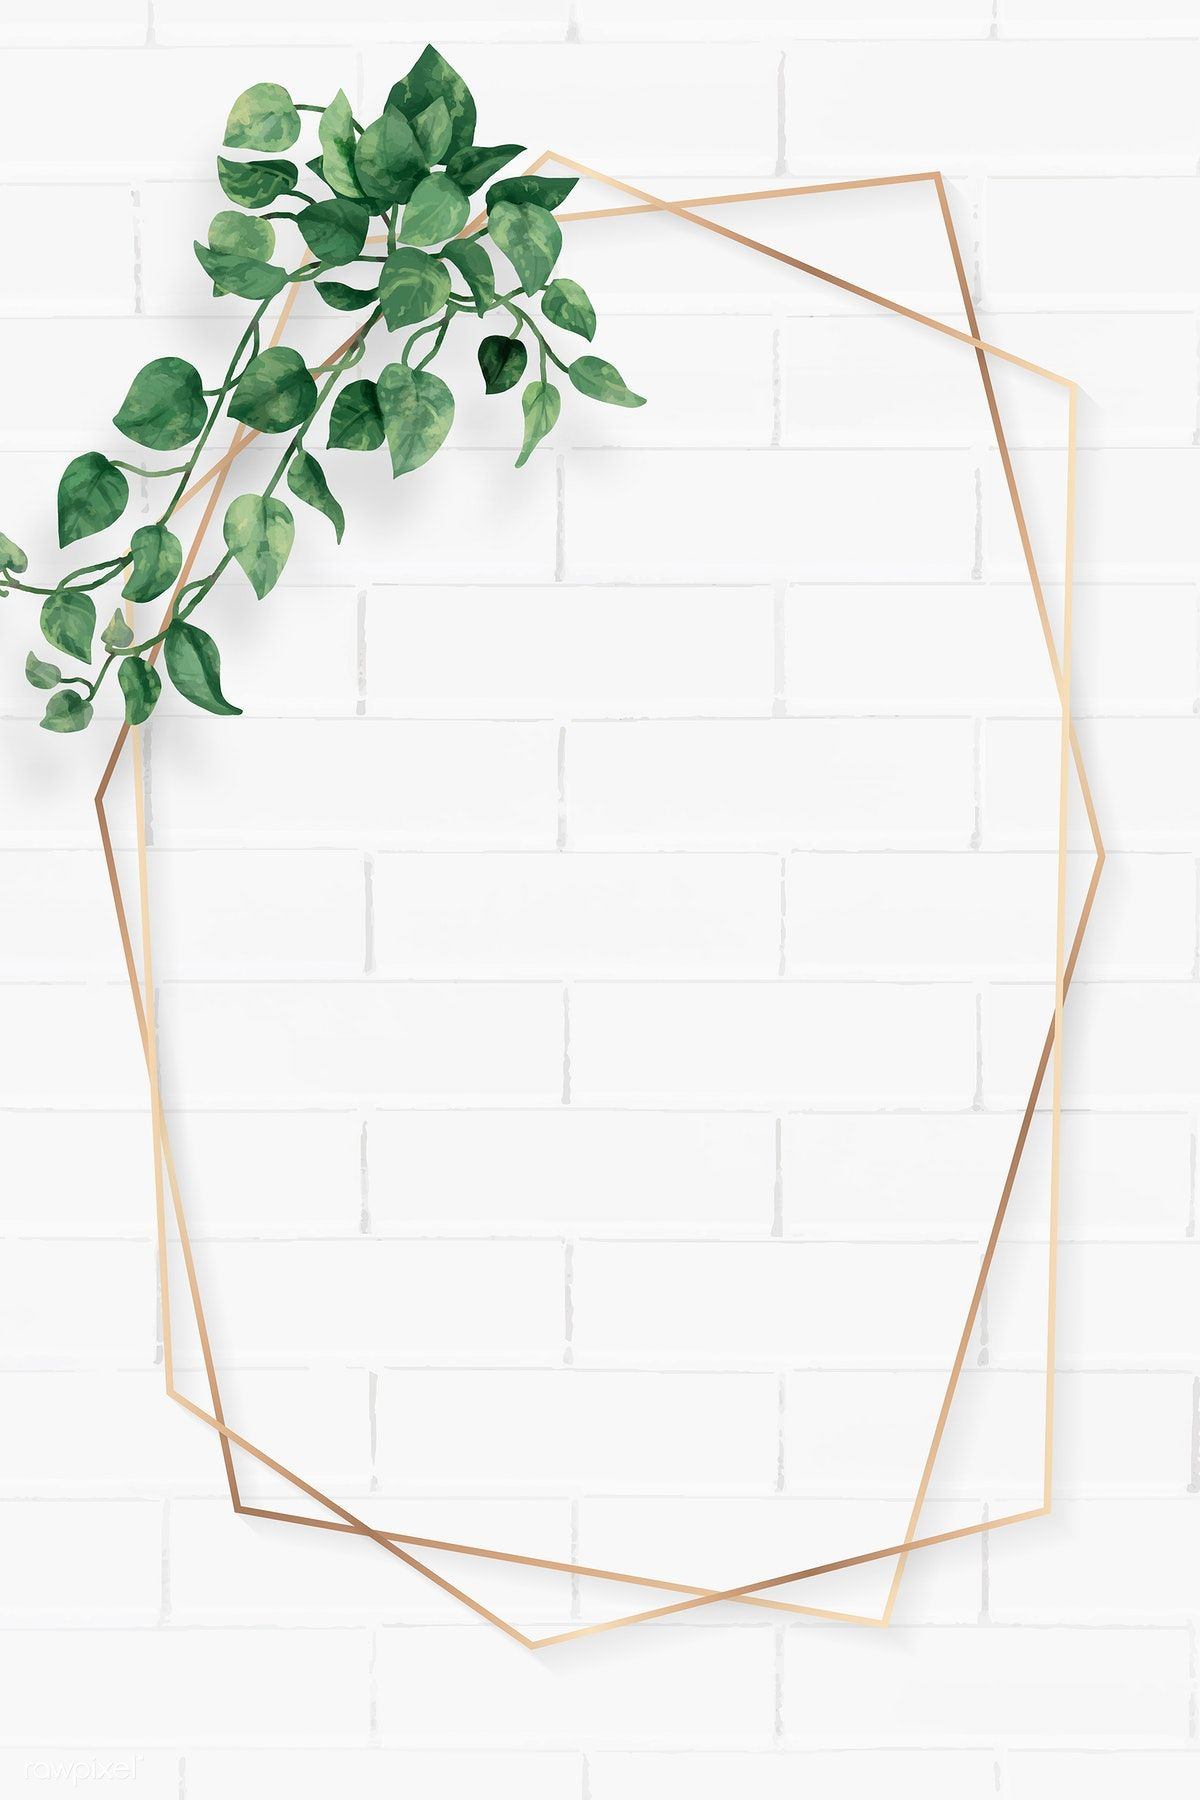 Download premium vector of Blank hexagon camellia leaves frame vector by Ning about leaves frame, white flora, hexagon, hexagon frame, and folhas 1208581